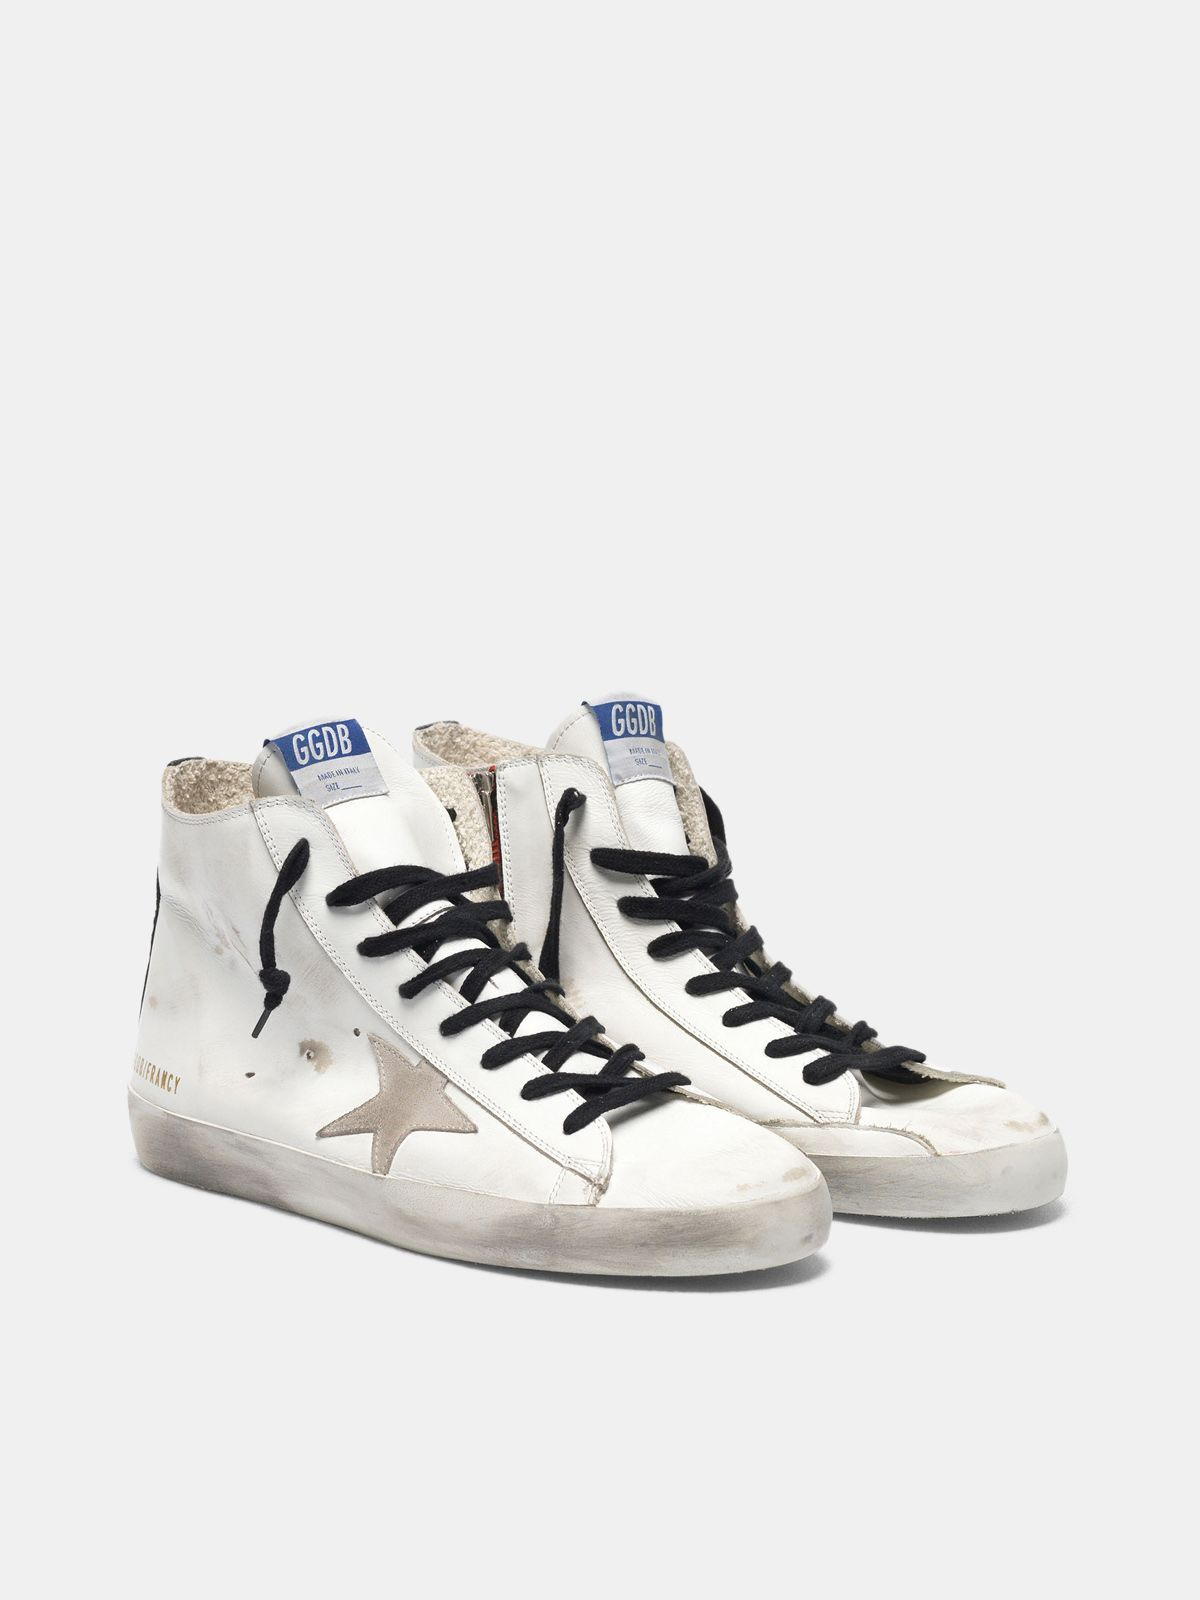 Golden Goose - Francy sneakers in leather with suede star and blue sole in